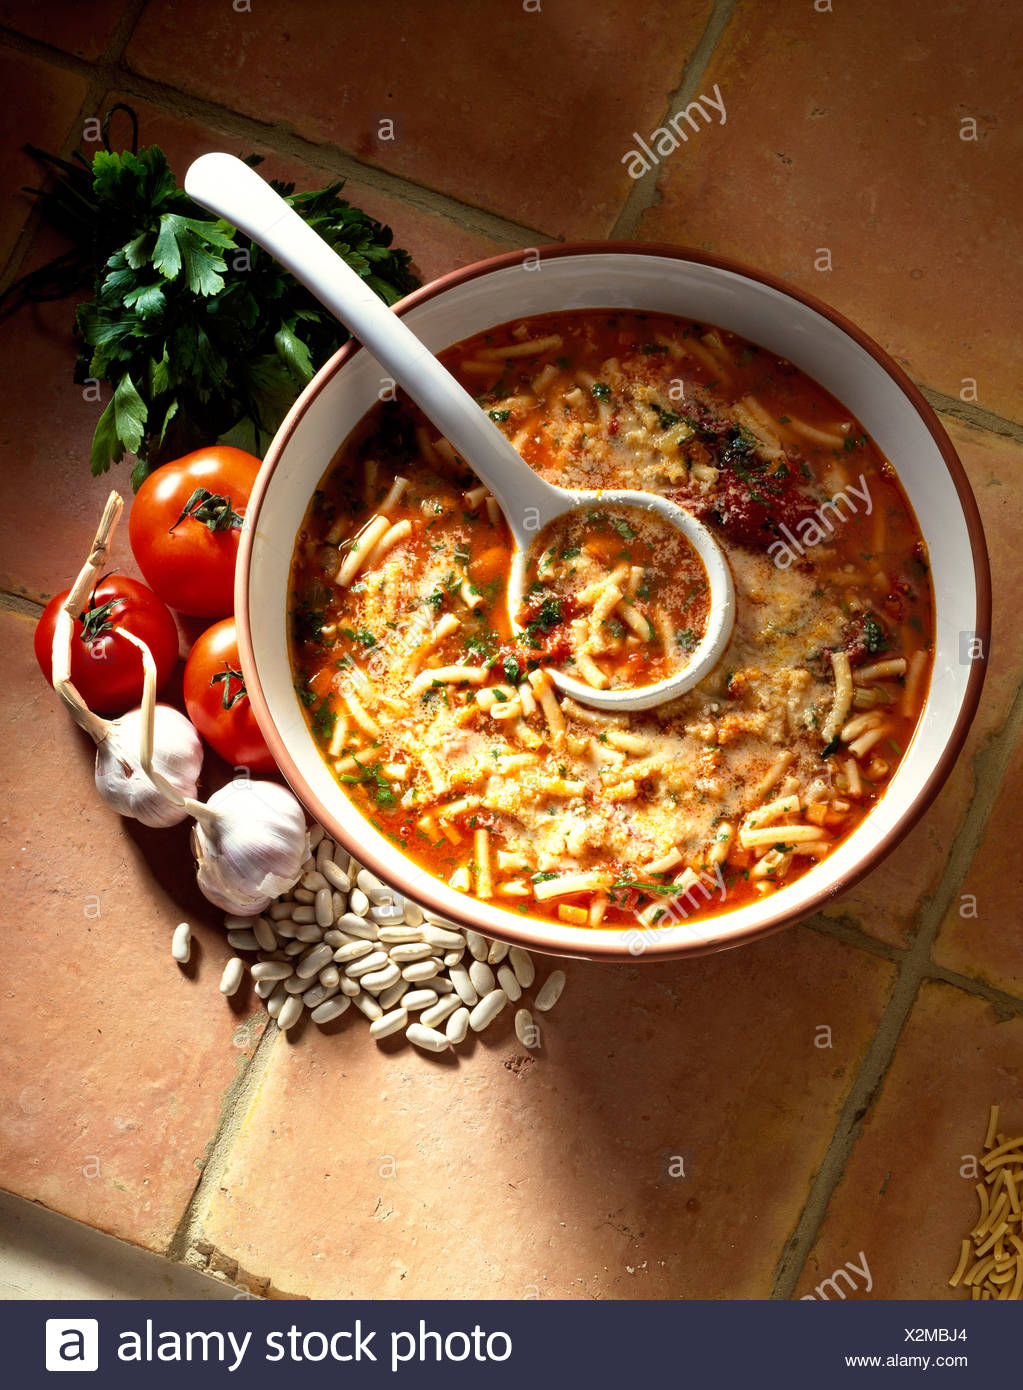 Cooking Italian Minestrone Serves Cup Dried White Cannellini Beans Tbs Virgin Olive Oil Celery Stalks Finely Chopped Stock Photo Alamy